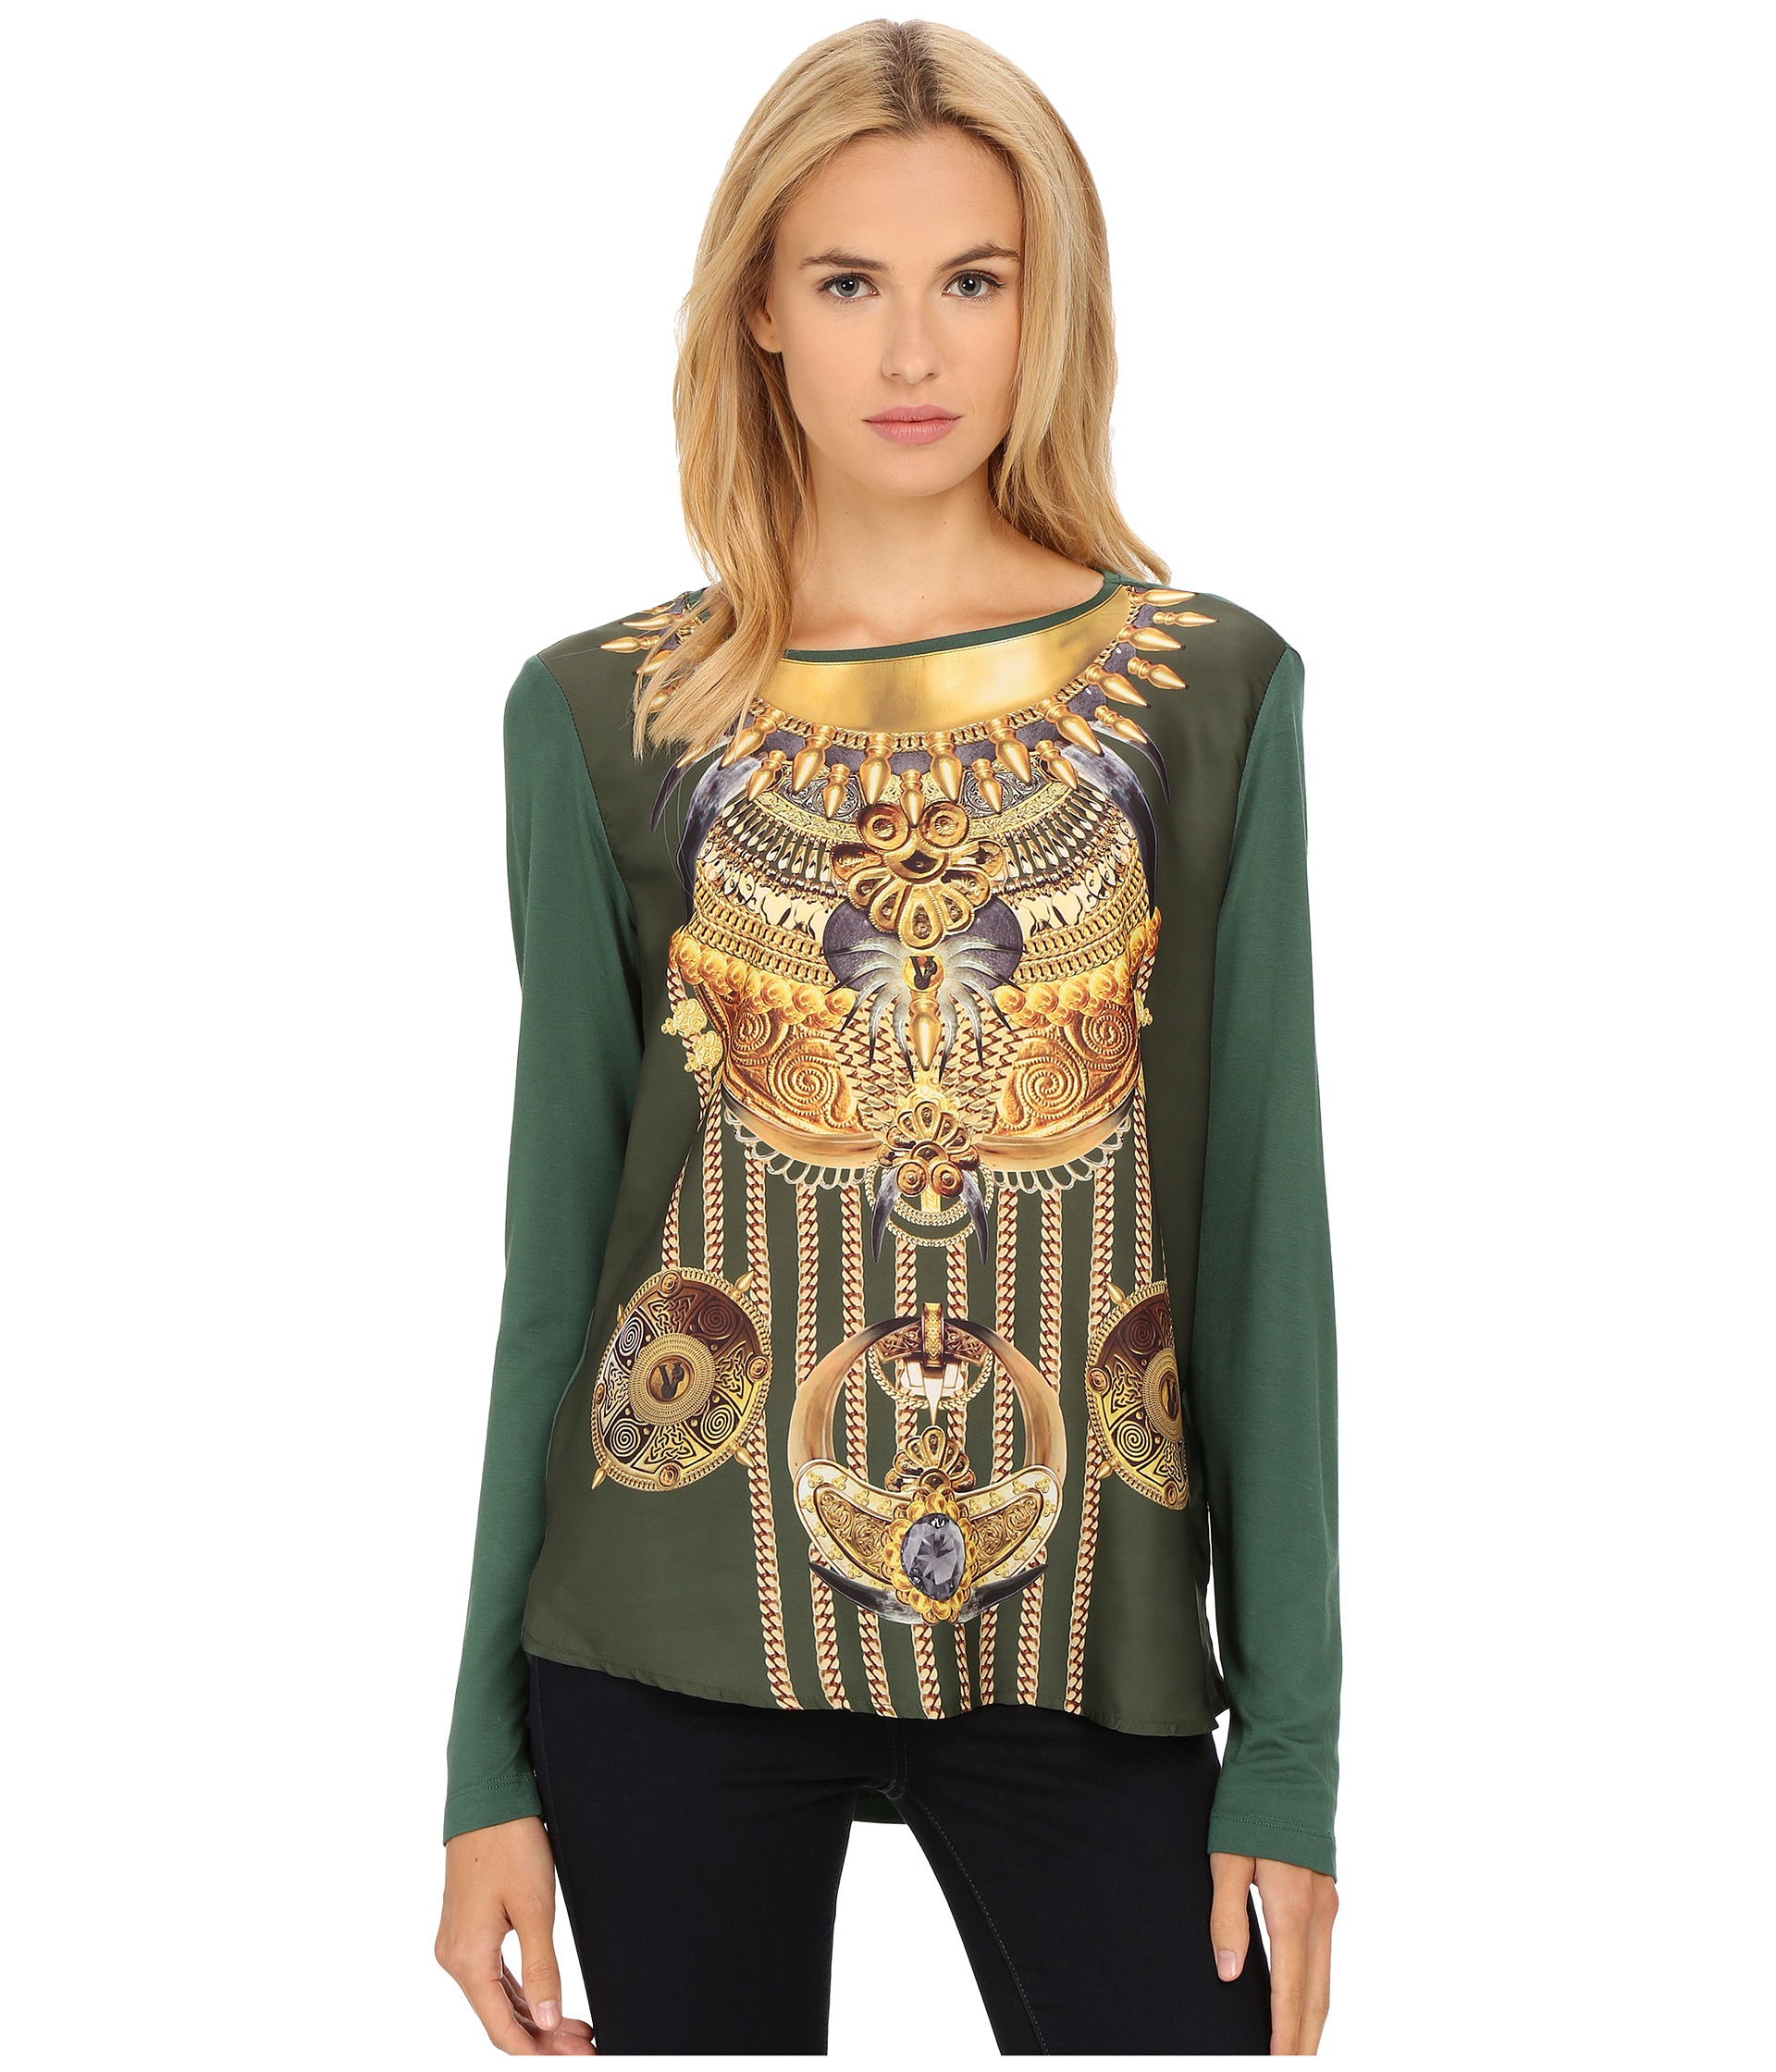 Versace for women clothing